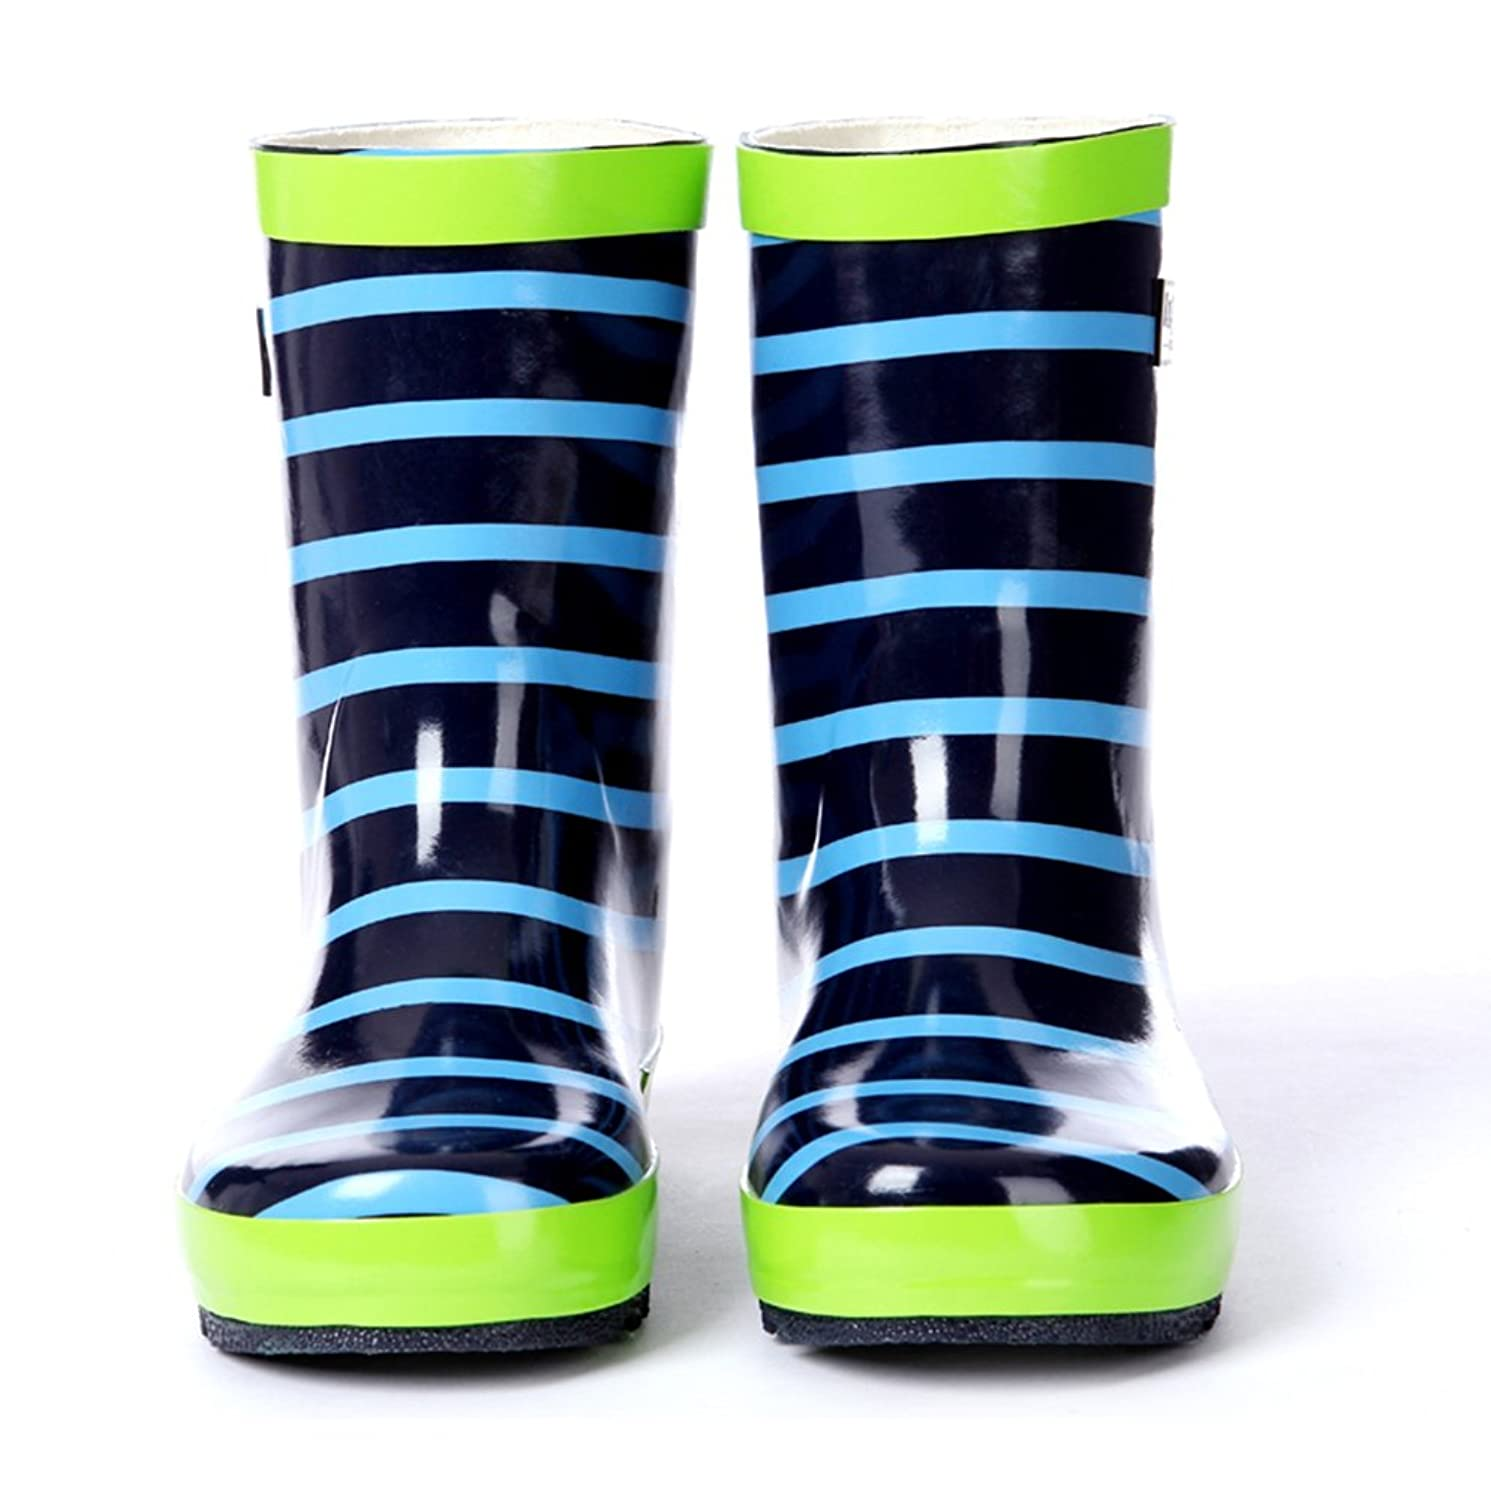 SK Studio Rain boots for Boys Easy On Printed Rubber Boots: Amazon.co.uk:  Shoes & Bags